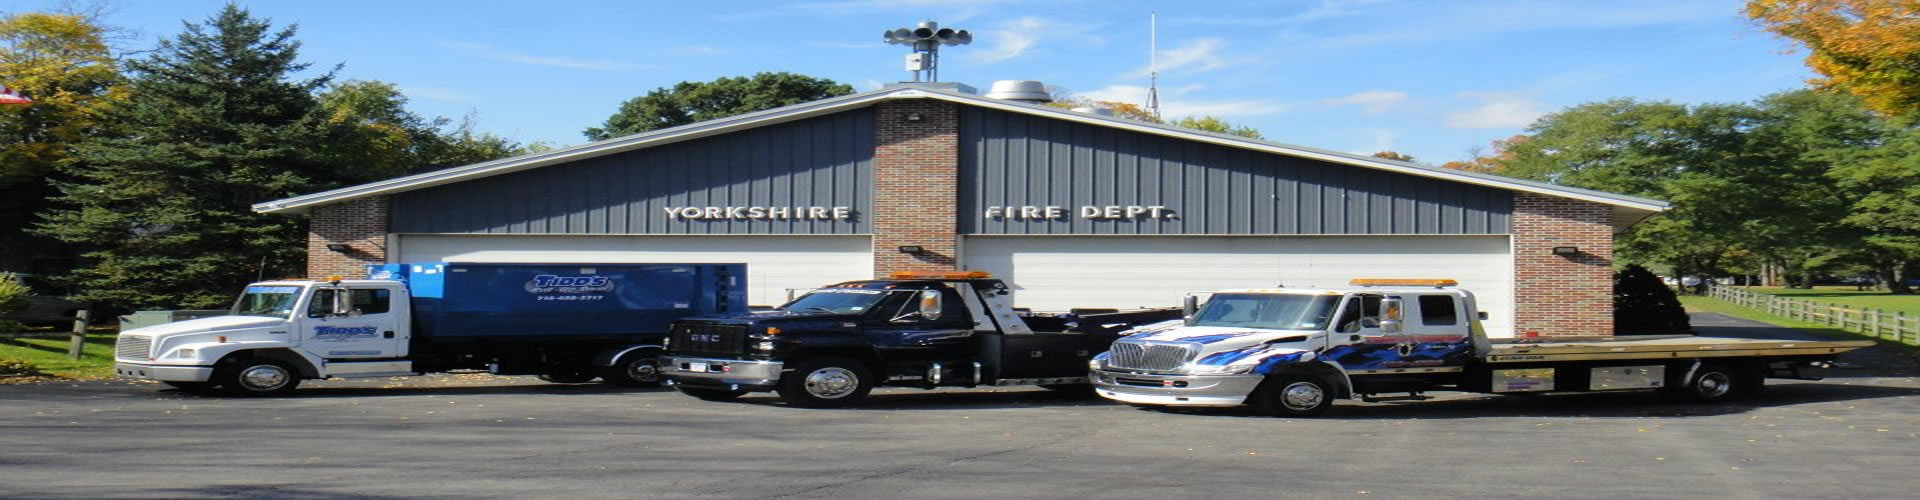 tidds towing pic